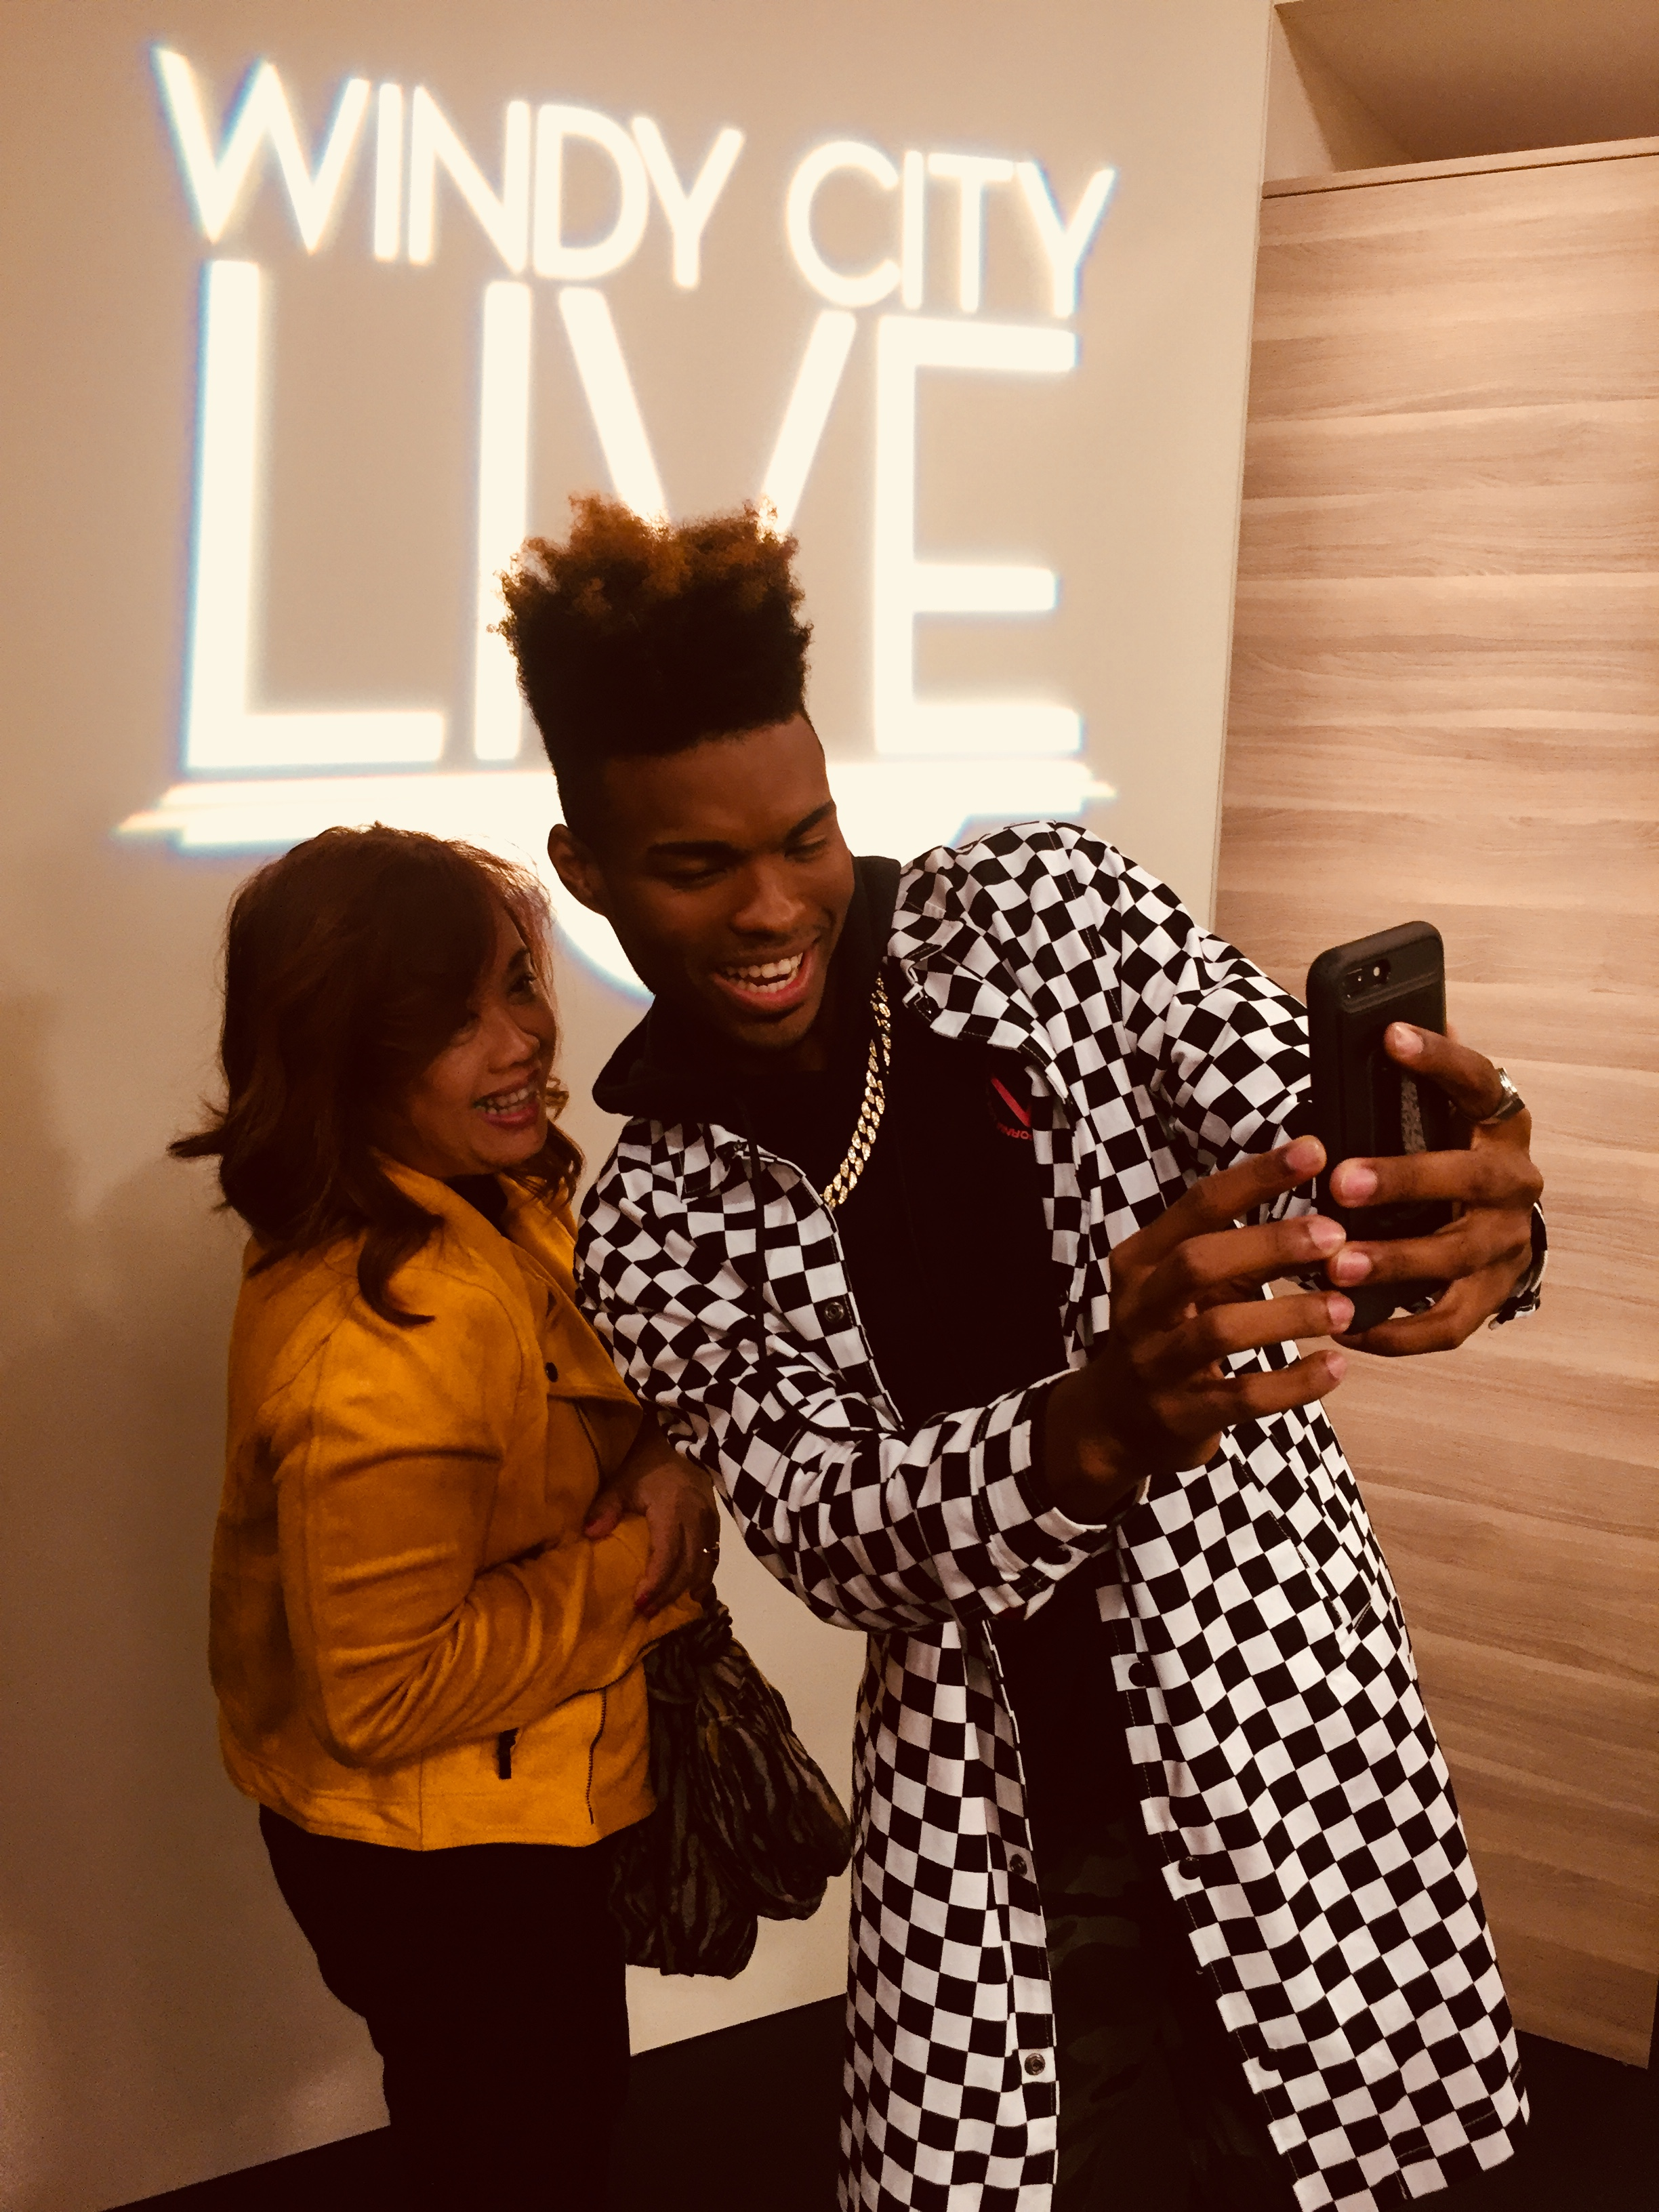 Magic Music Management Atlanta Jibrizy Windy City Live.JPG